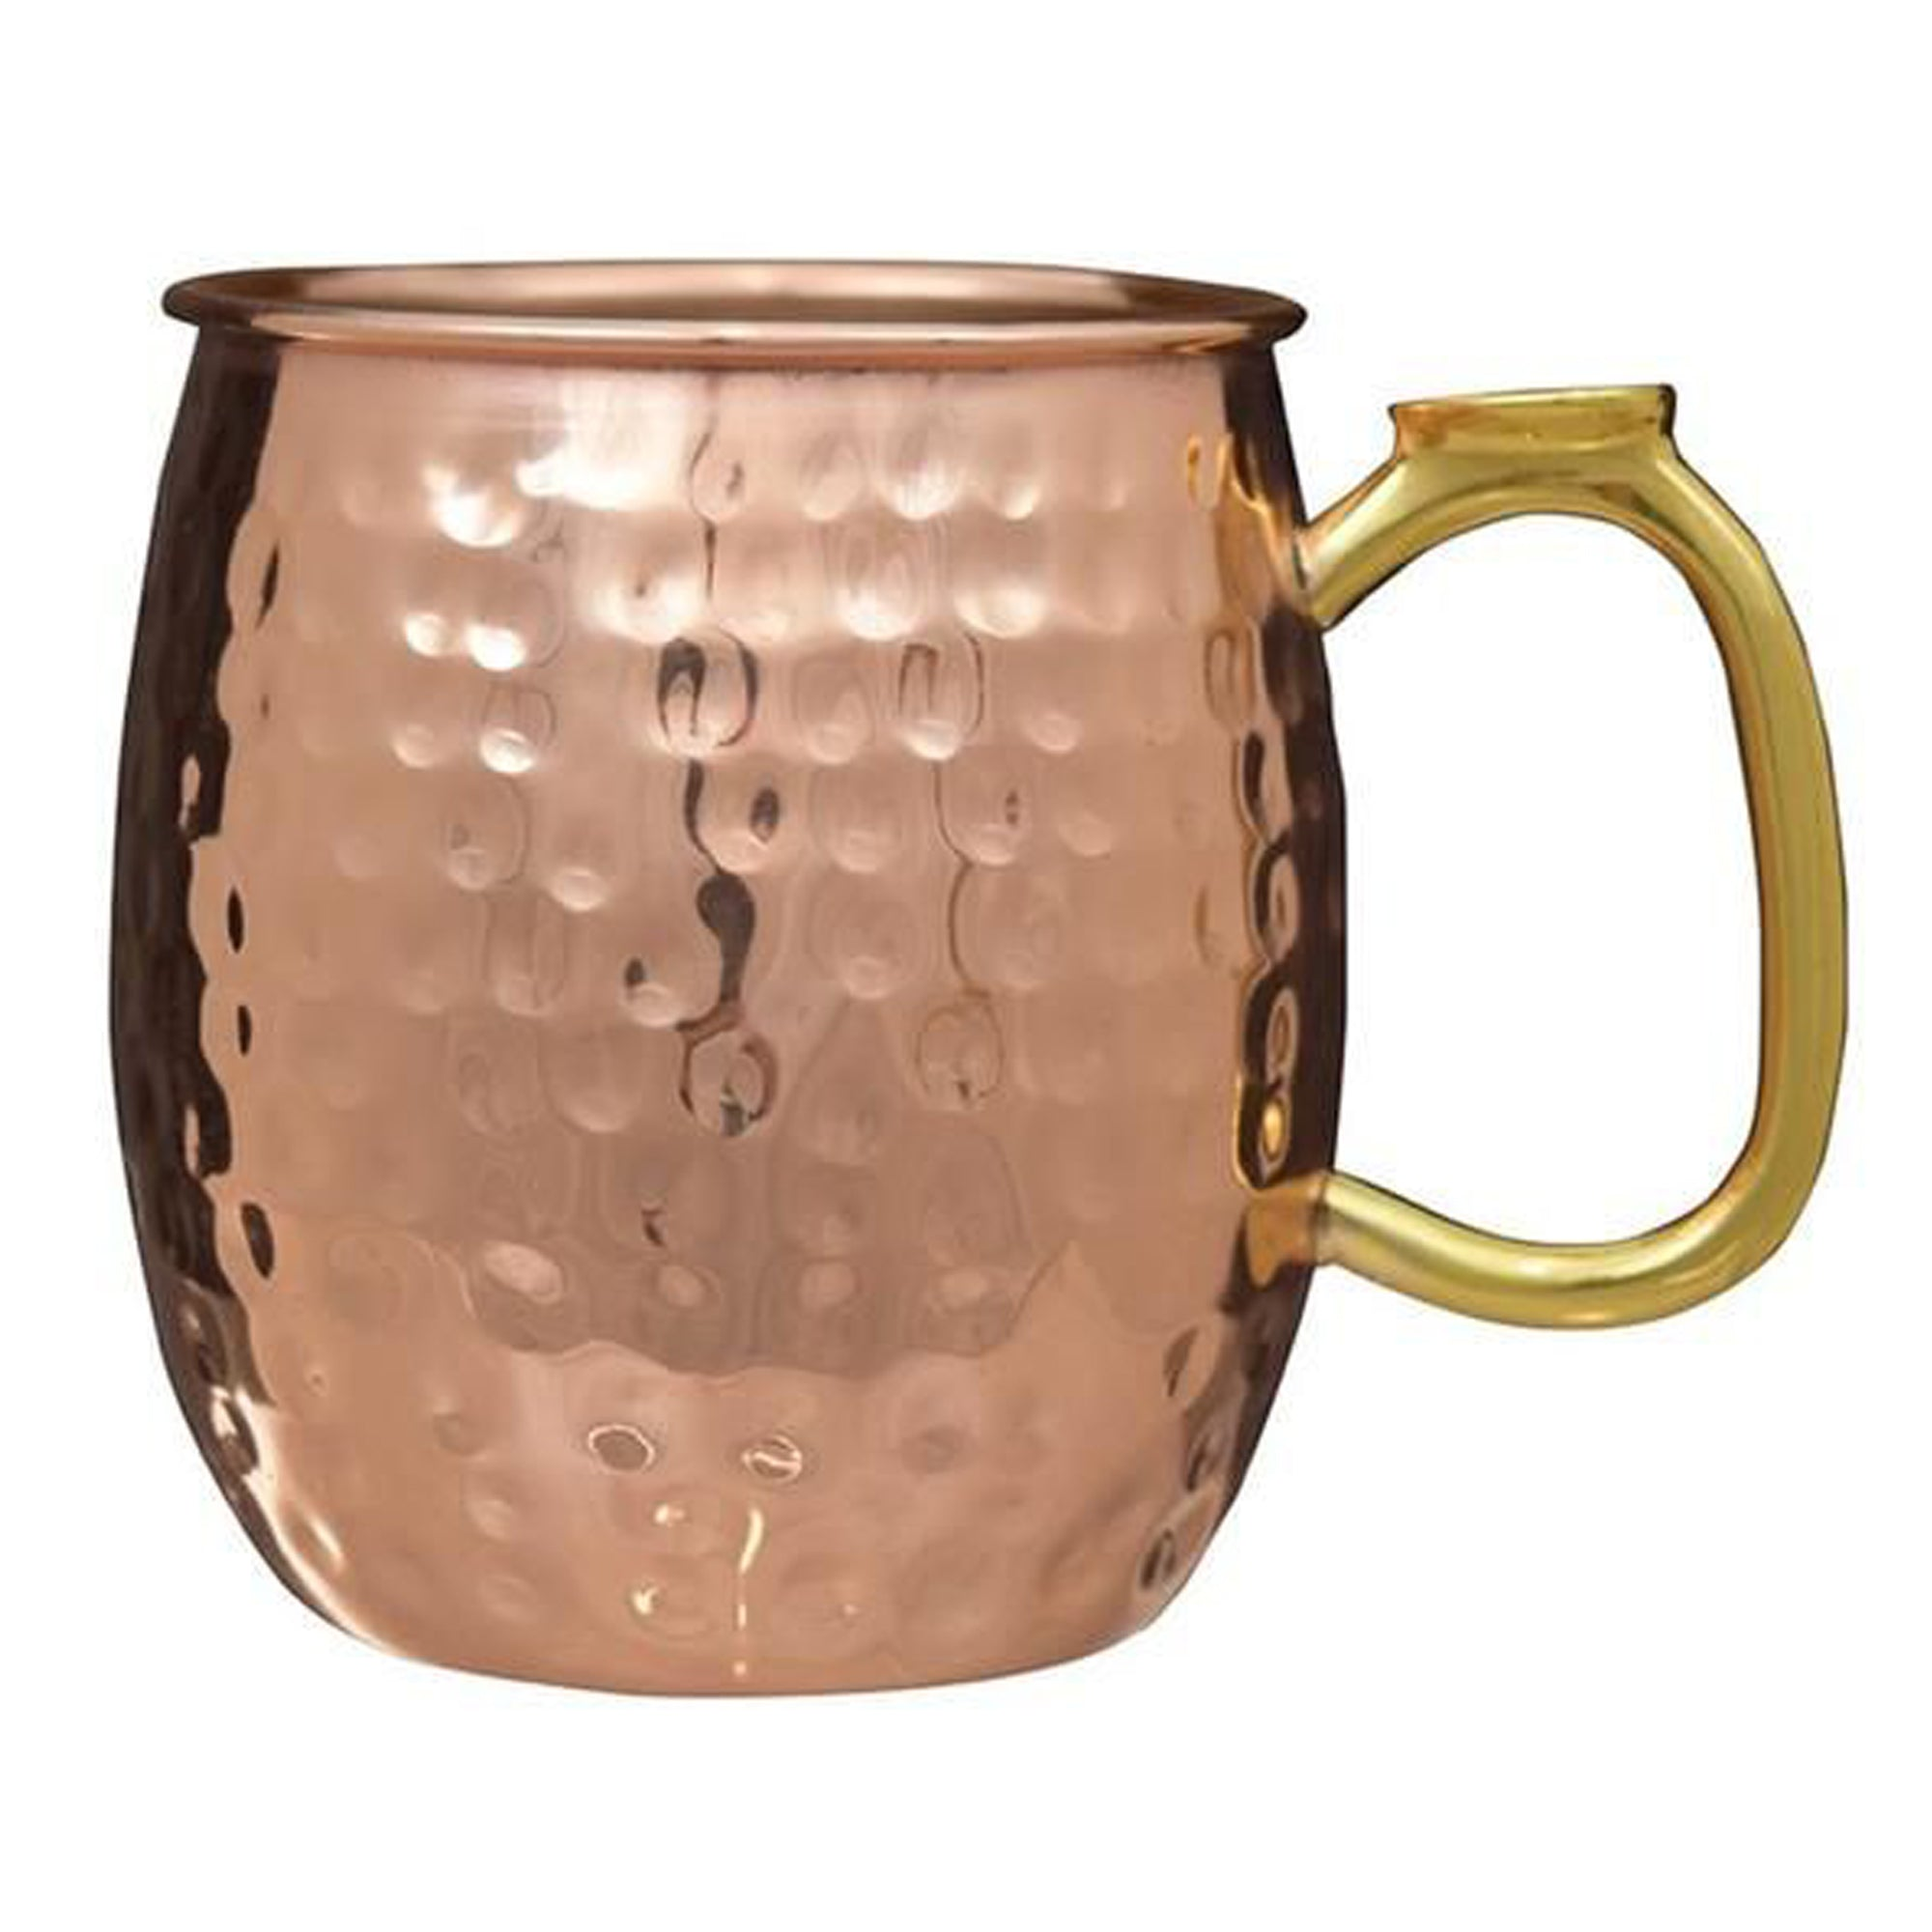 Moscow mule mug - copper plated 22oz hammered MM-51H